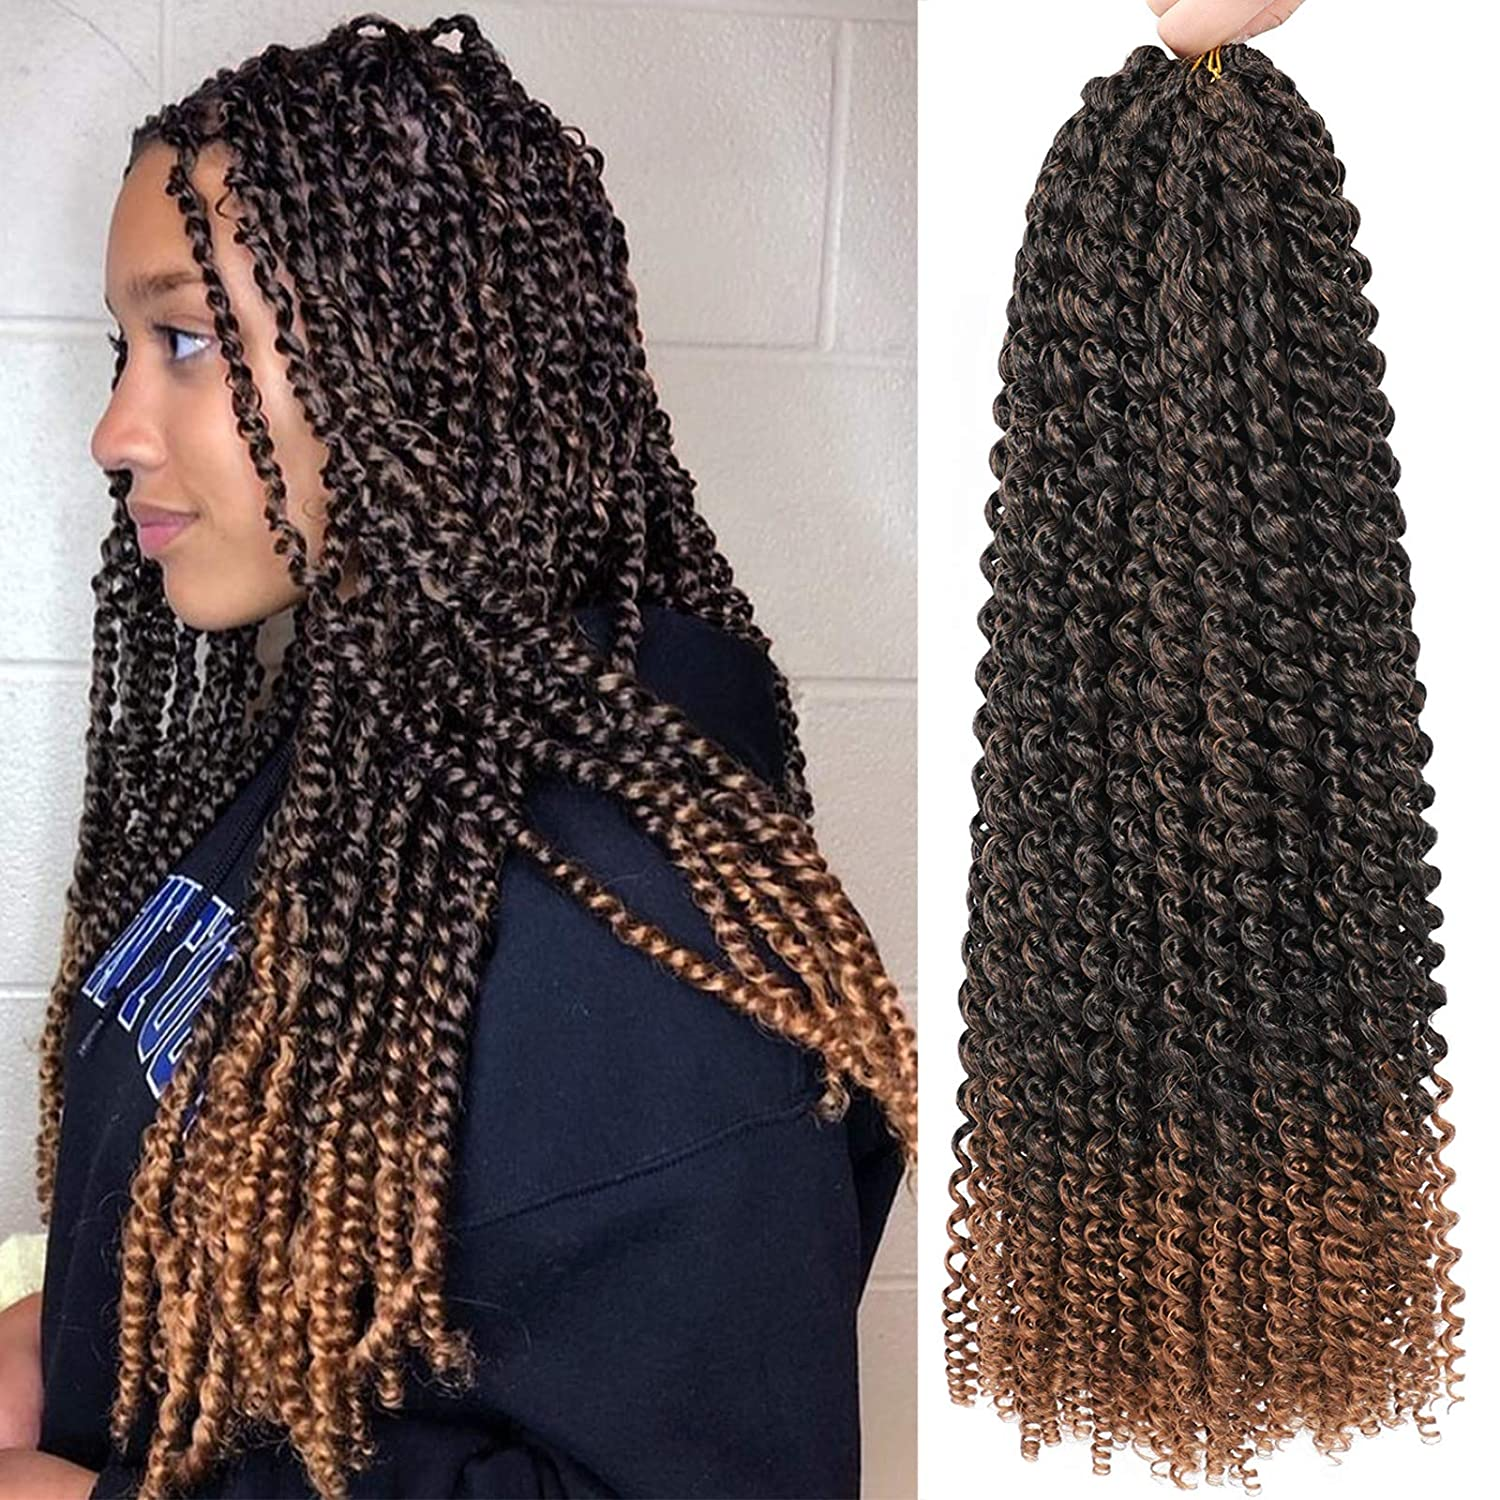 Water Wave Crochet Hair - 24 Twist Cur Passion Inch 8 store Surprise price Packs